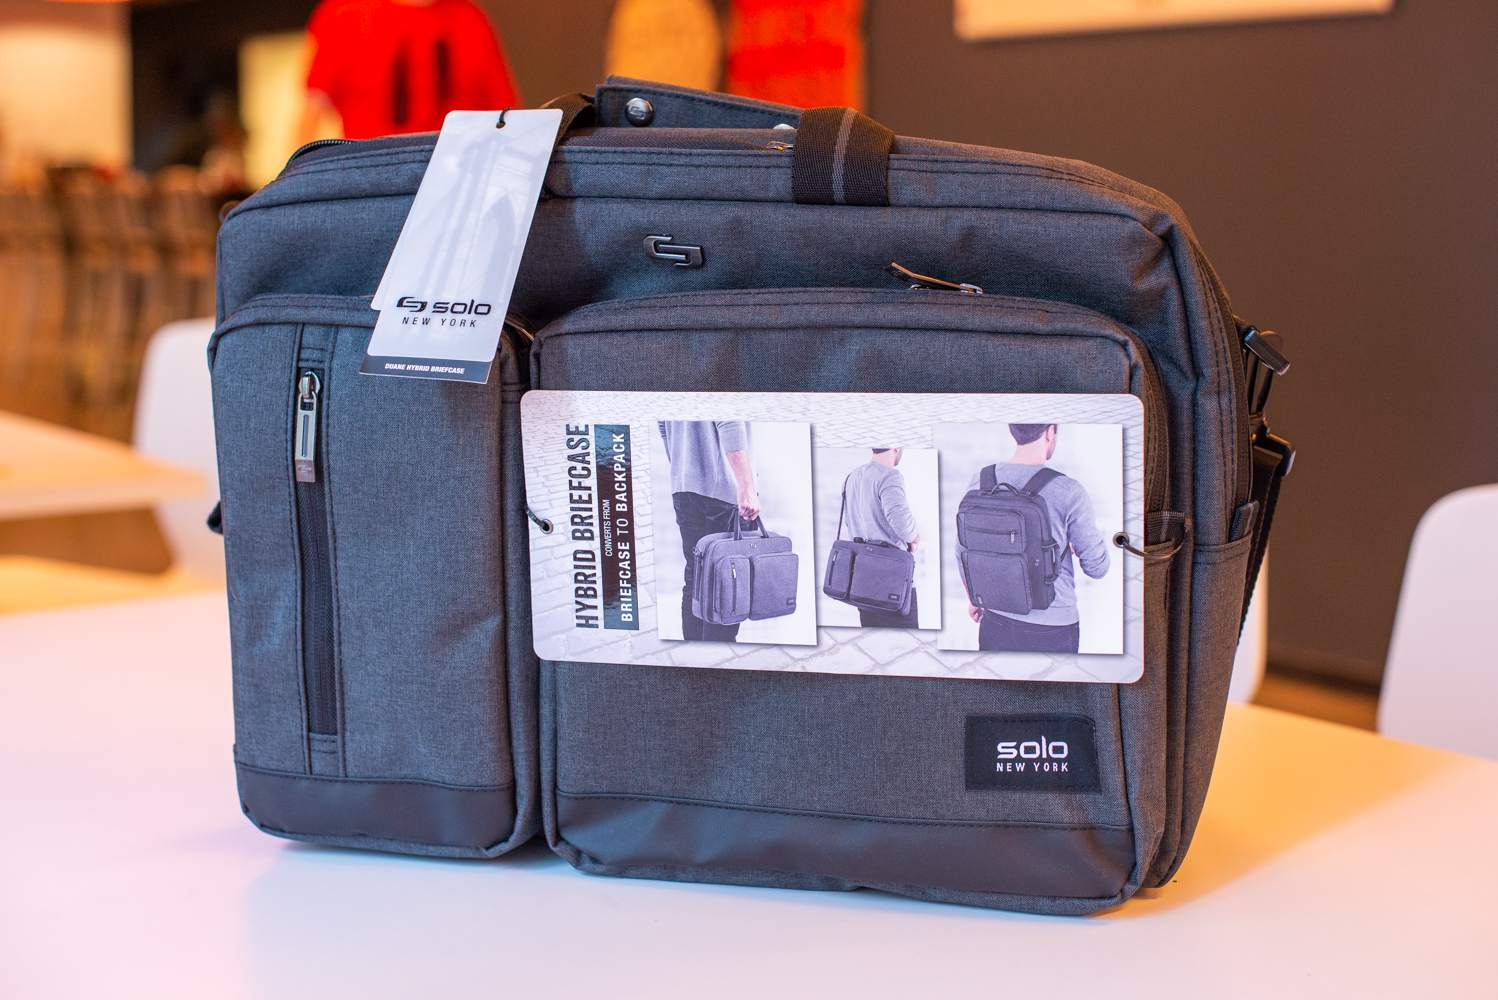 Versatility was a big draw for our testers with this lightweight laptop bag  — specifically a4cc6bff99c89